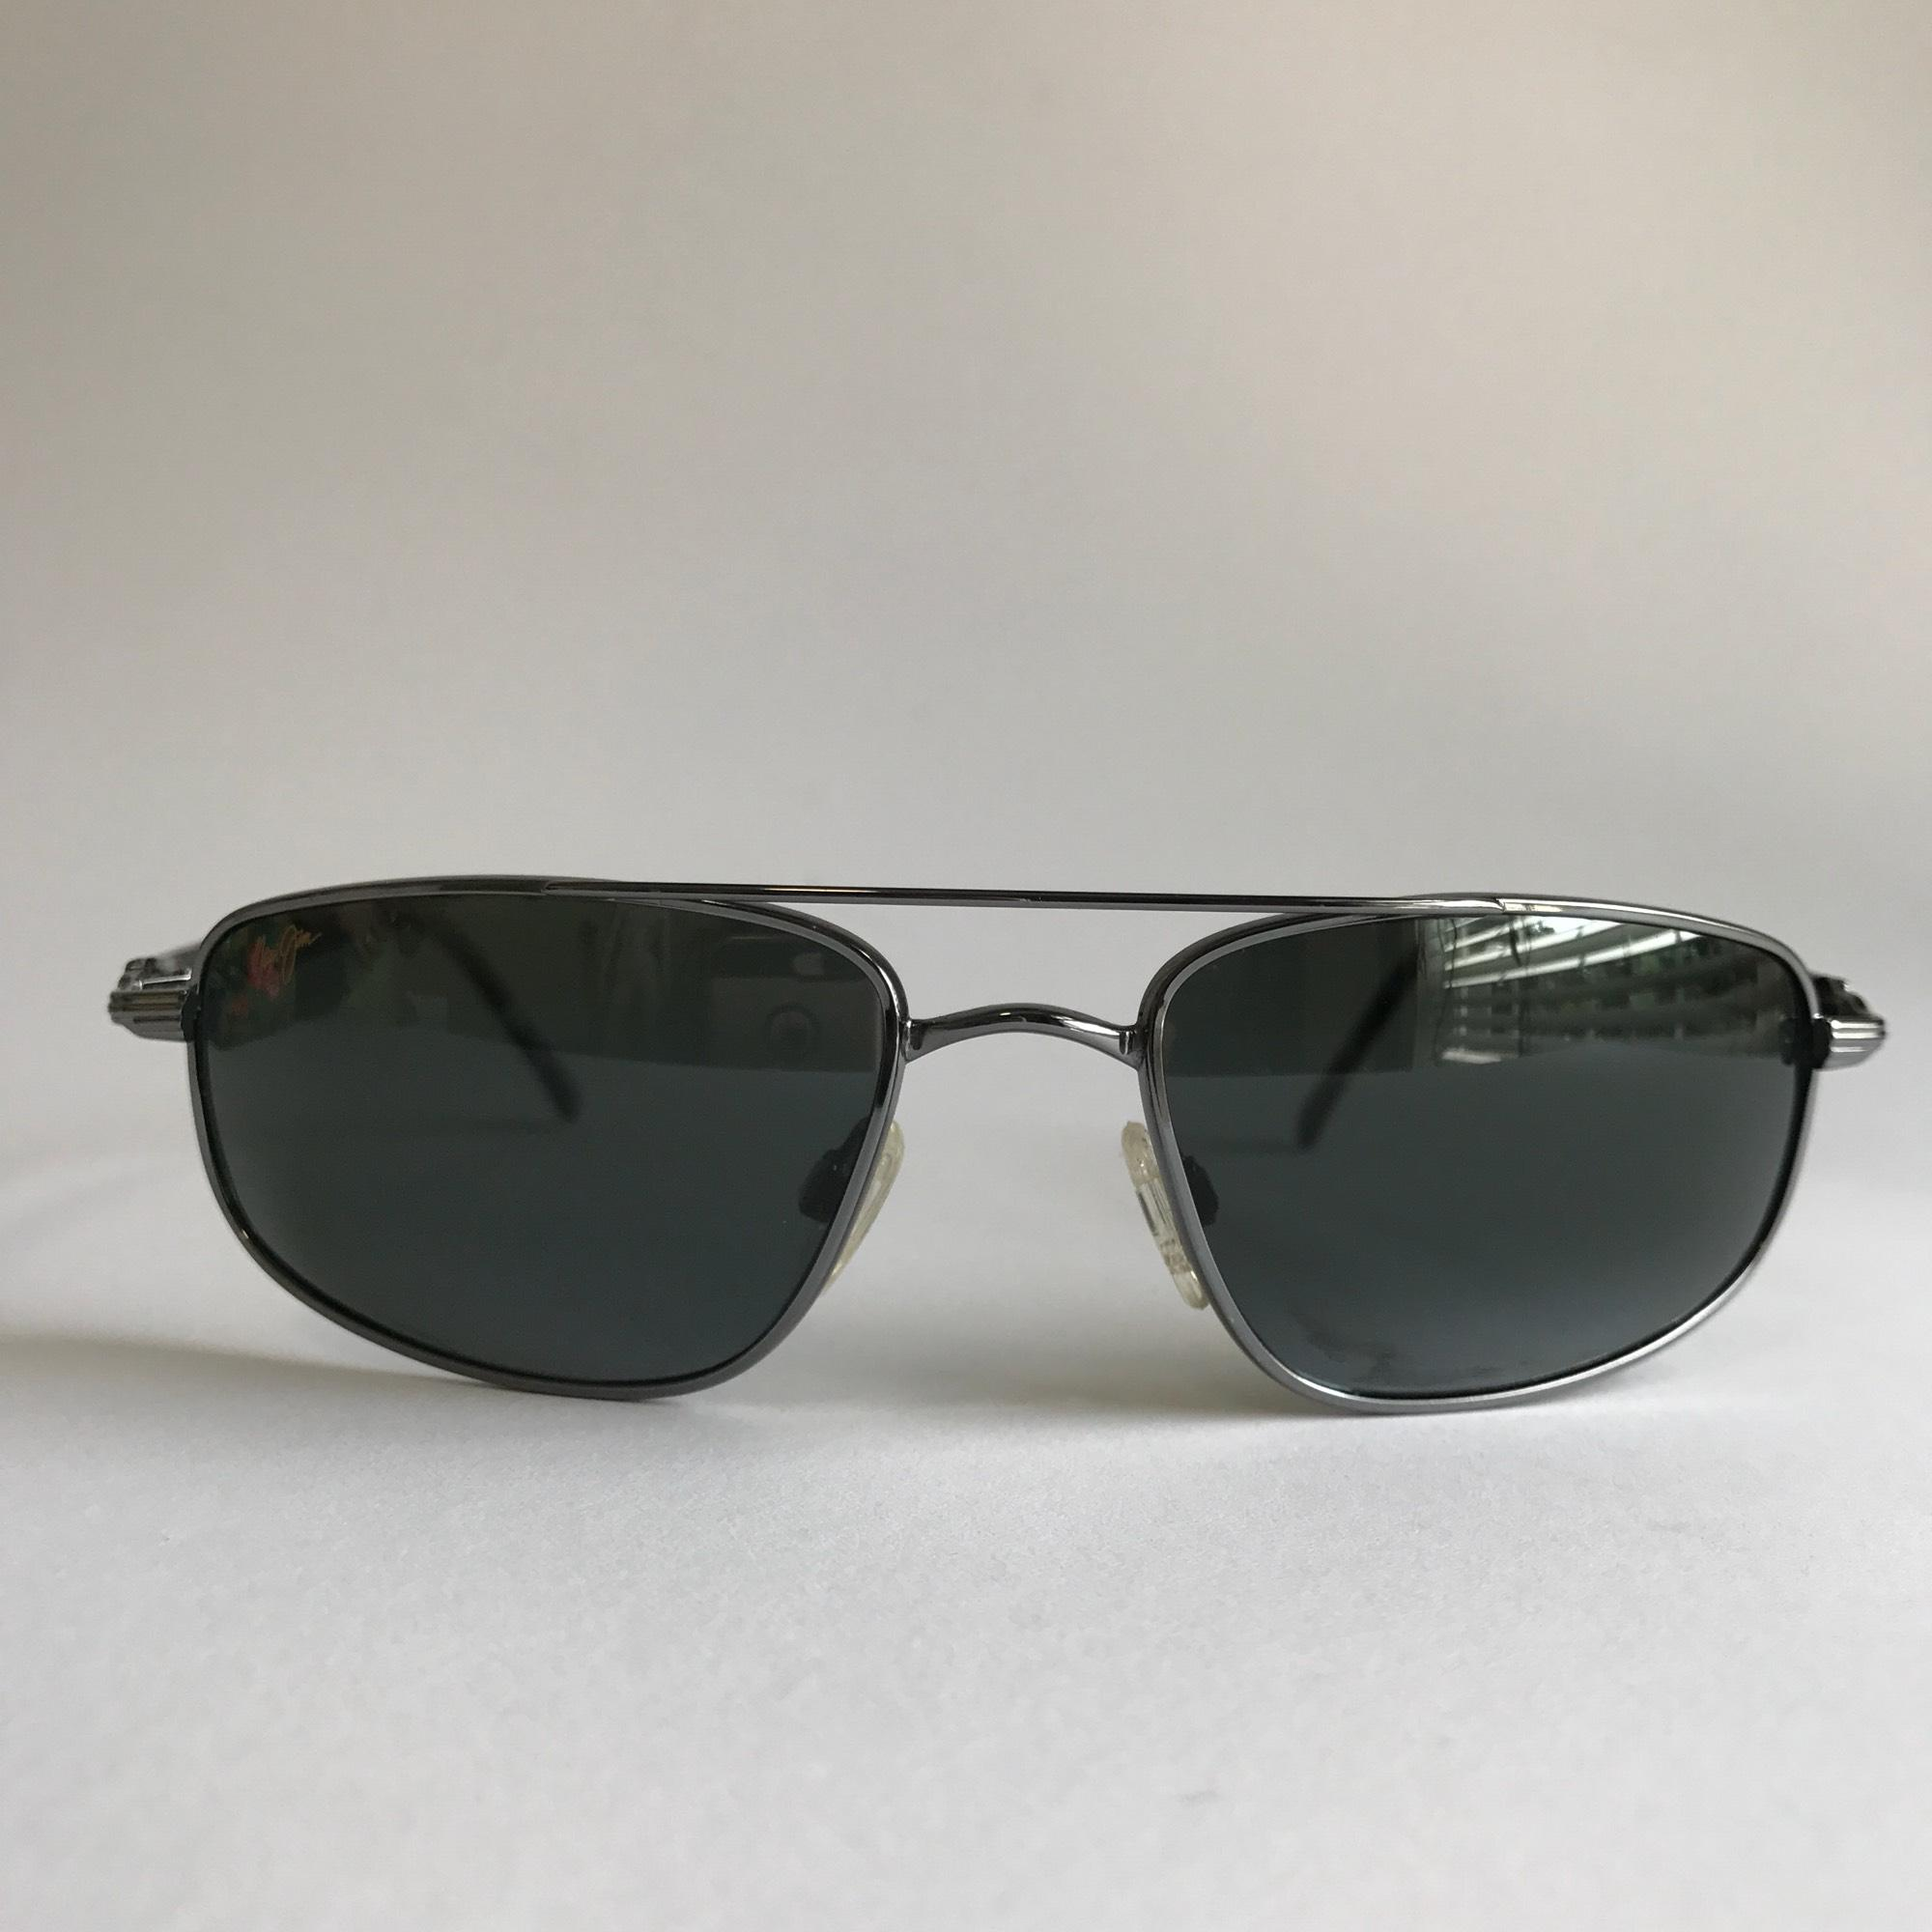 Maui Jim Kahuna Gunmetal/Neutral Grey Sunglasses (MJ-Kahuna-162-02-59) gqcEfdersZ